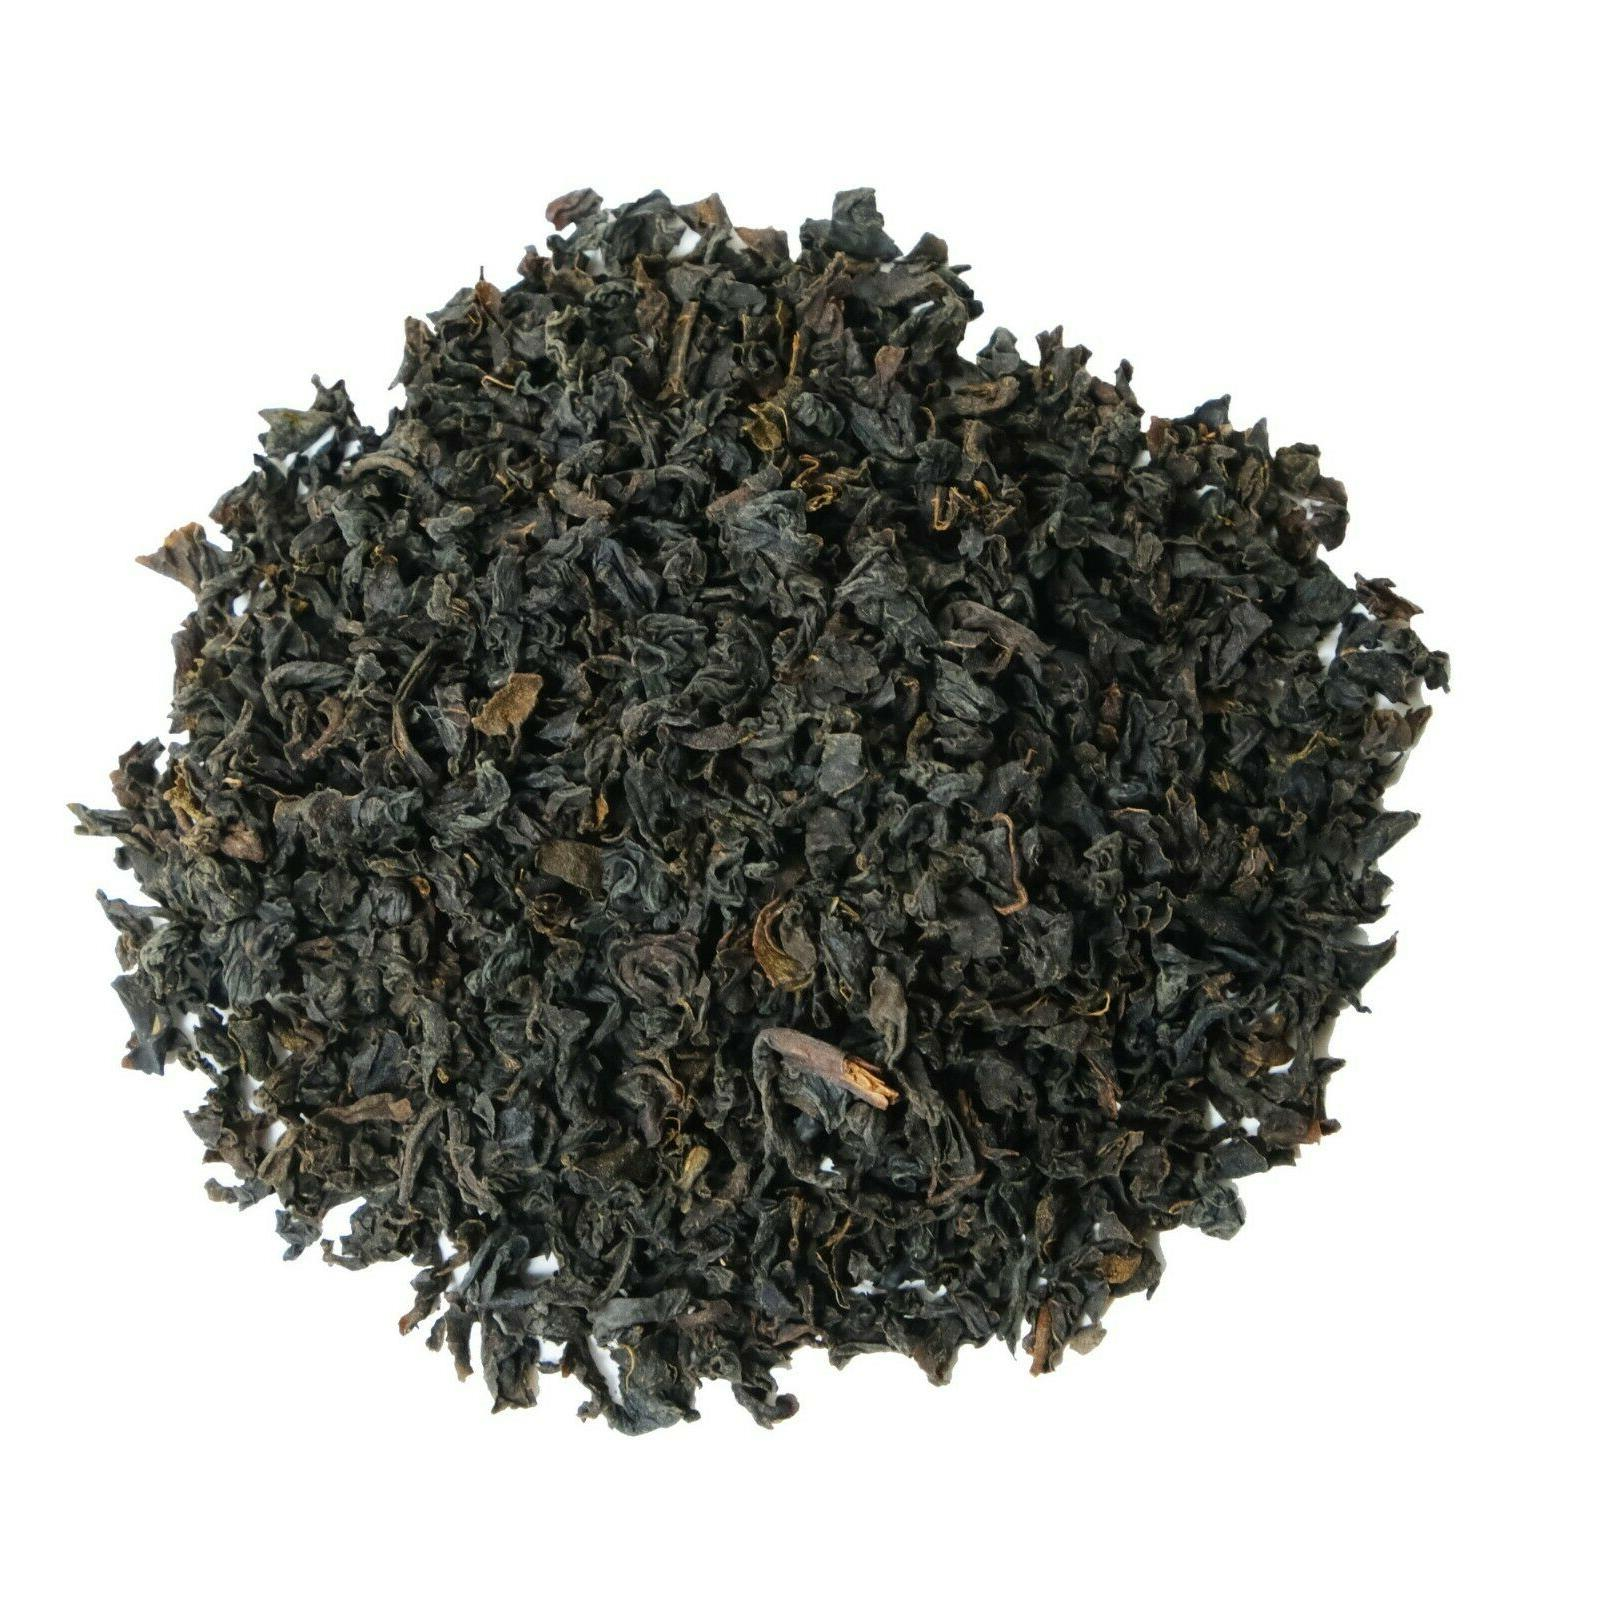 Ceylon Black English Breakfast Premium Tea Pouch 4 oz